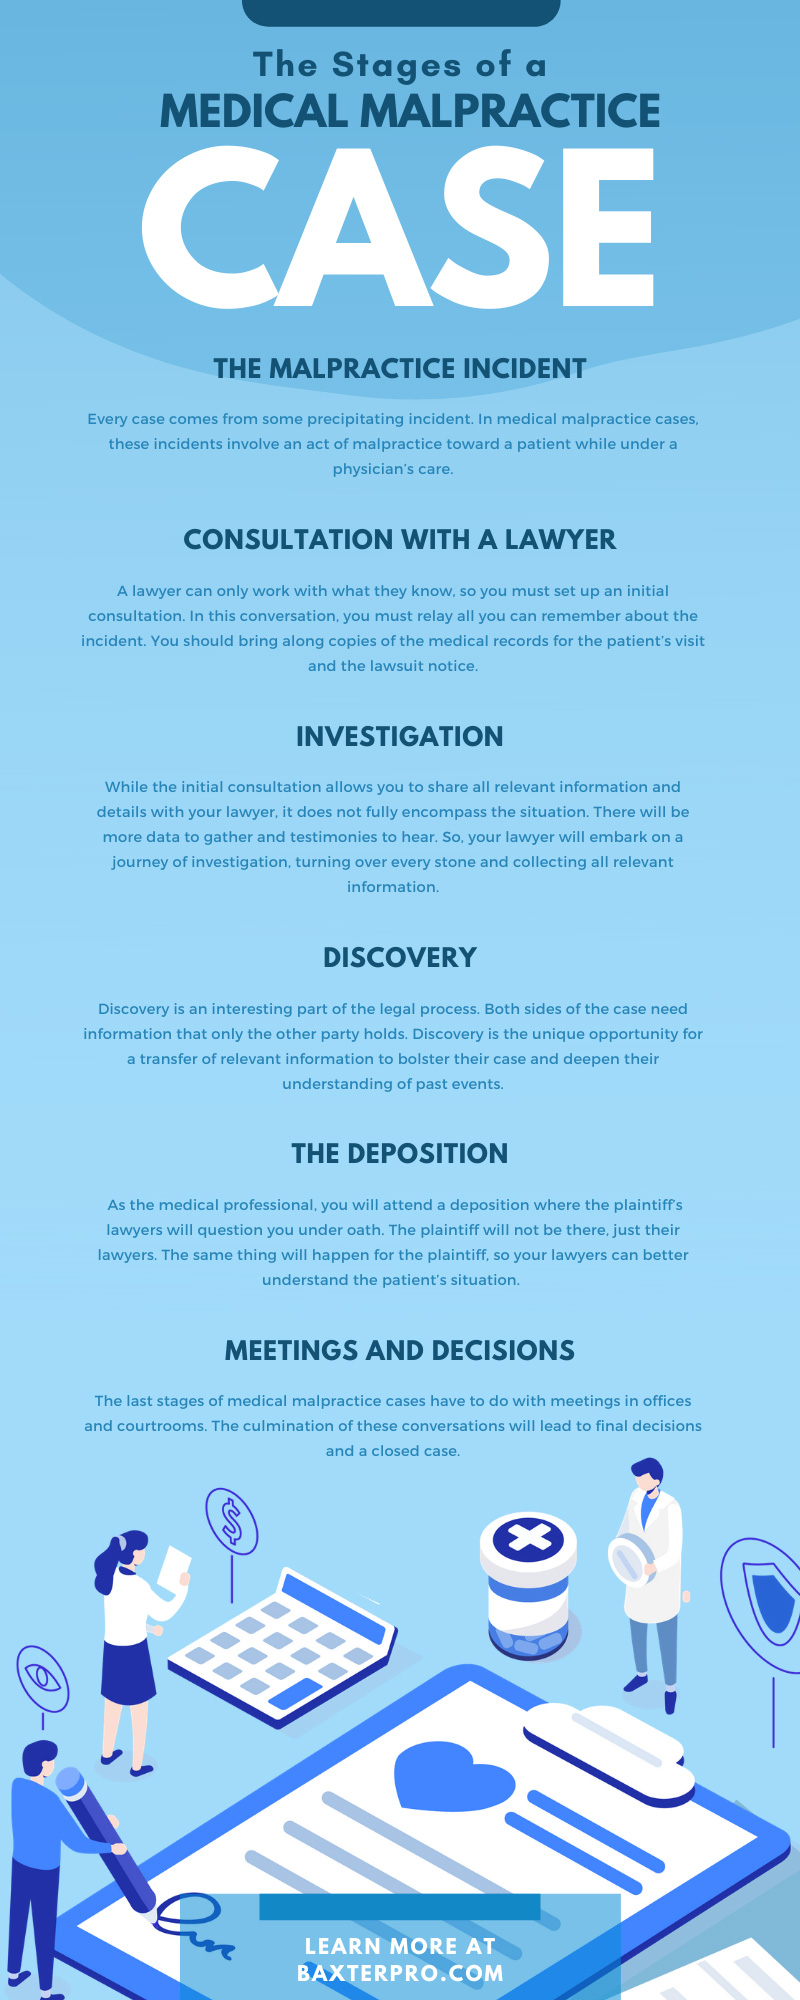 The Stages of a Medical Malpractice Case